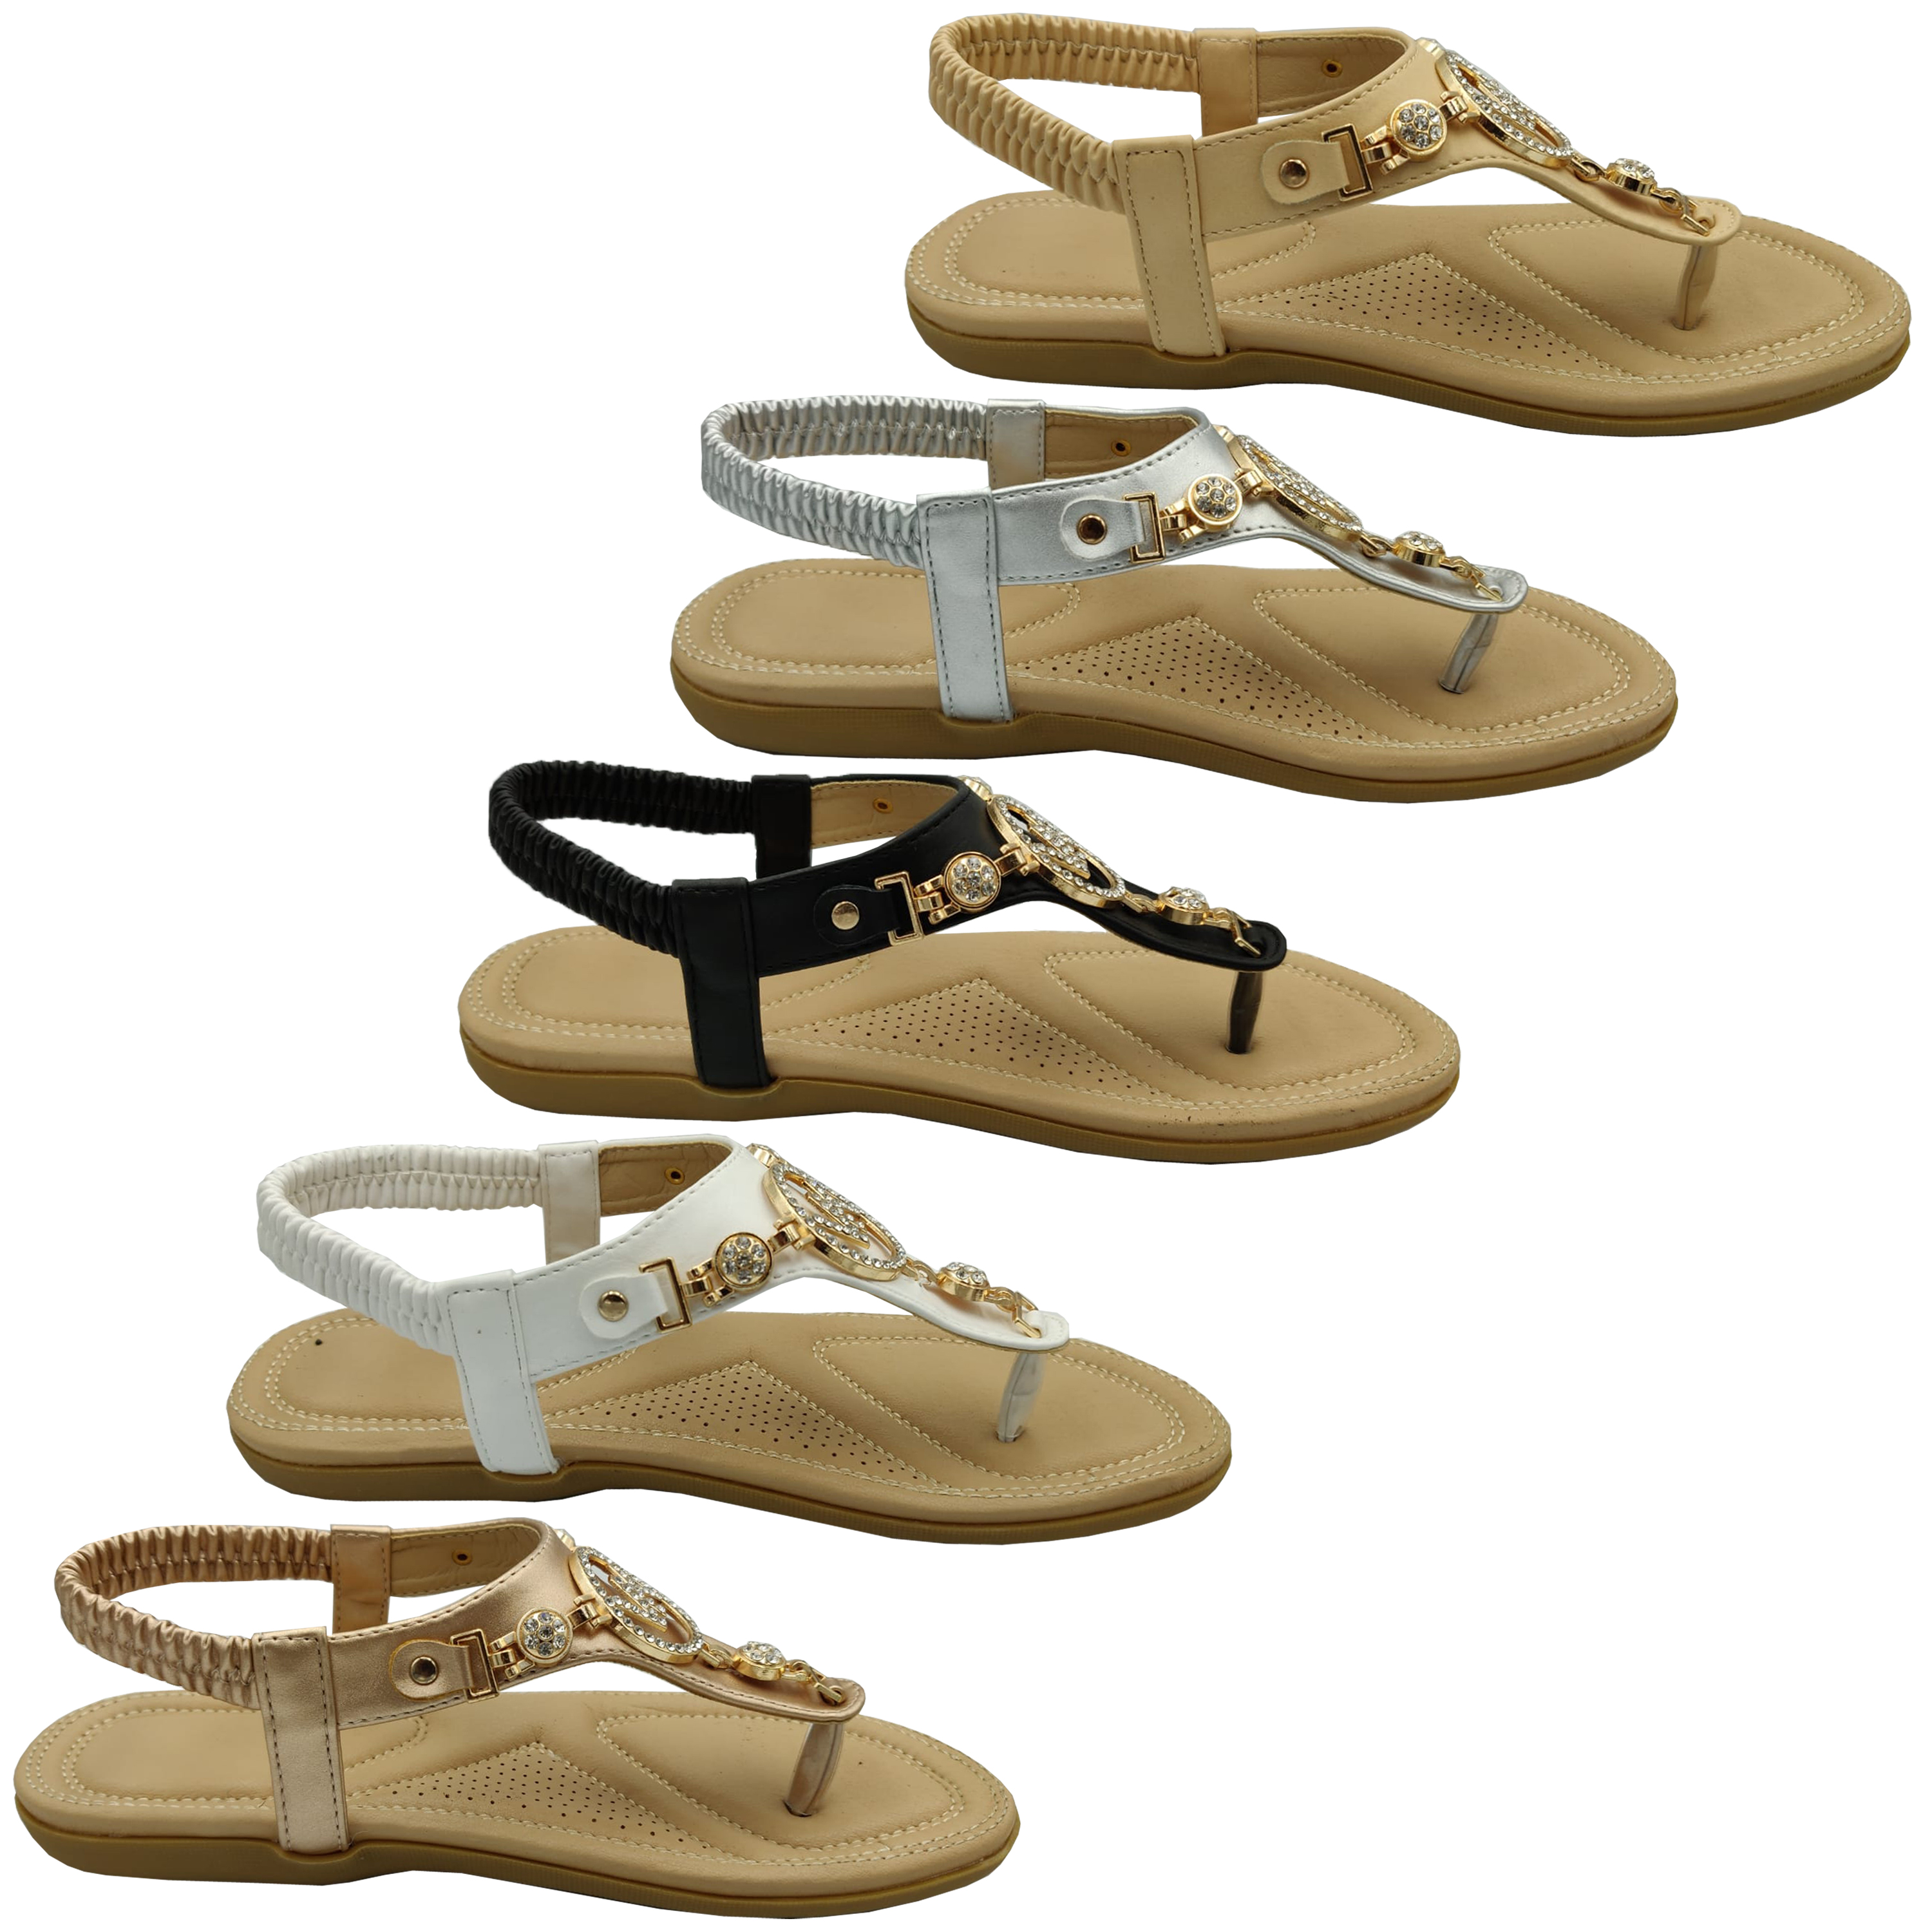 Ladies-Flat-Sandals-Womens-Diamante-Sling-Back-Toe-Post-Shoes-Summer-Fashion-New thumbnail 5